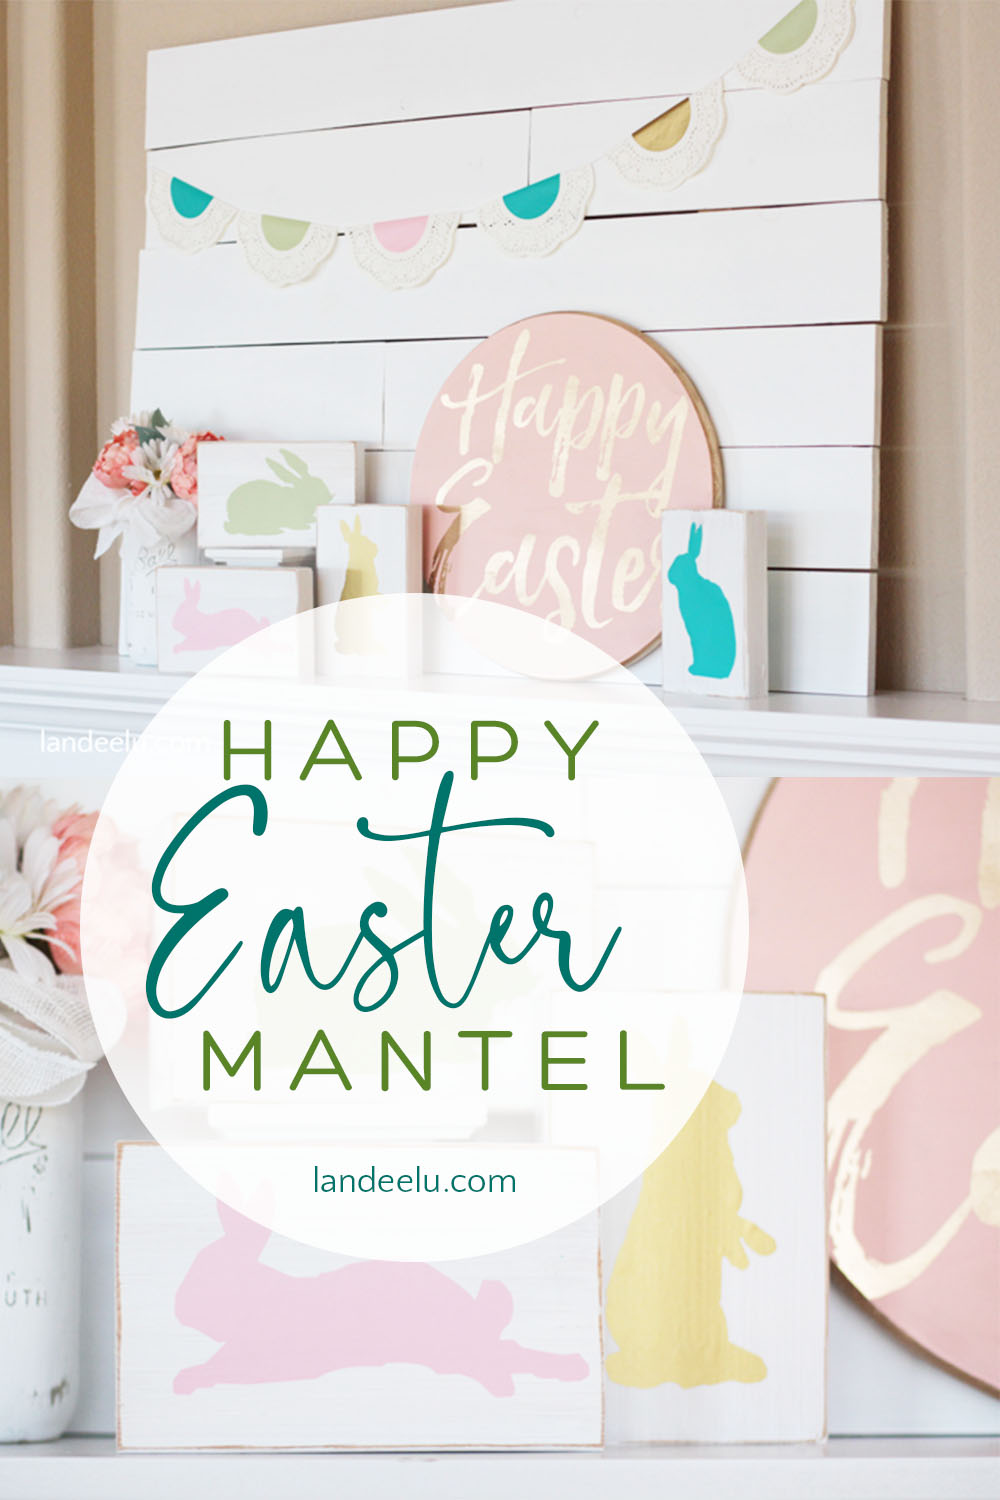 Happy Easter Mantel idea! Full of darling DIY projects perfect for spring! #easter #eastermantel #eastercrafts #springdecor #springmantel